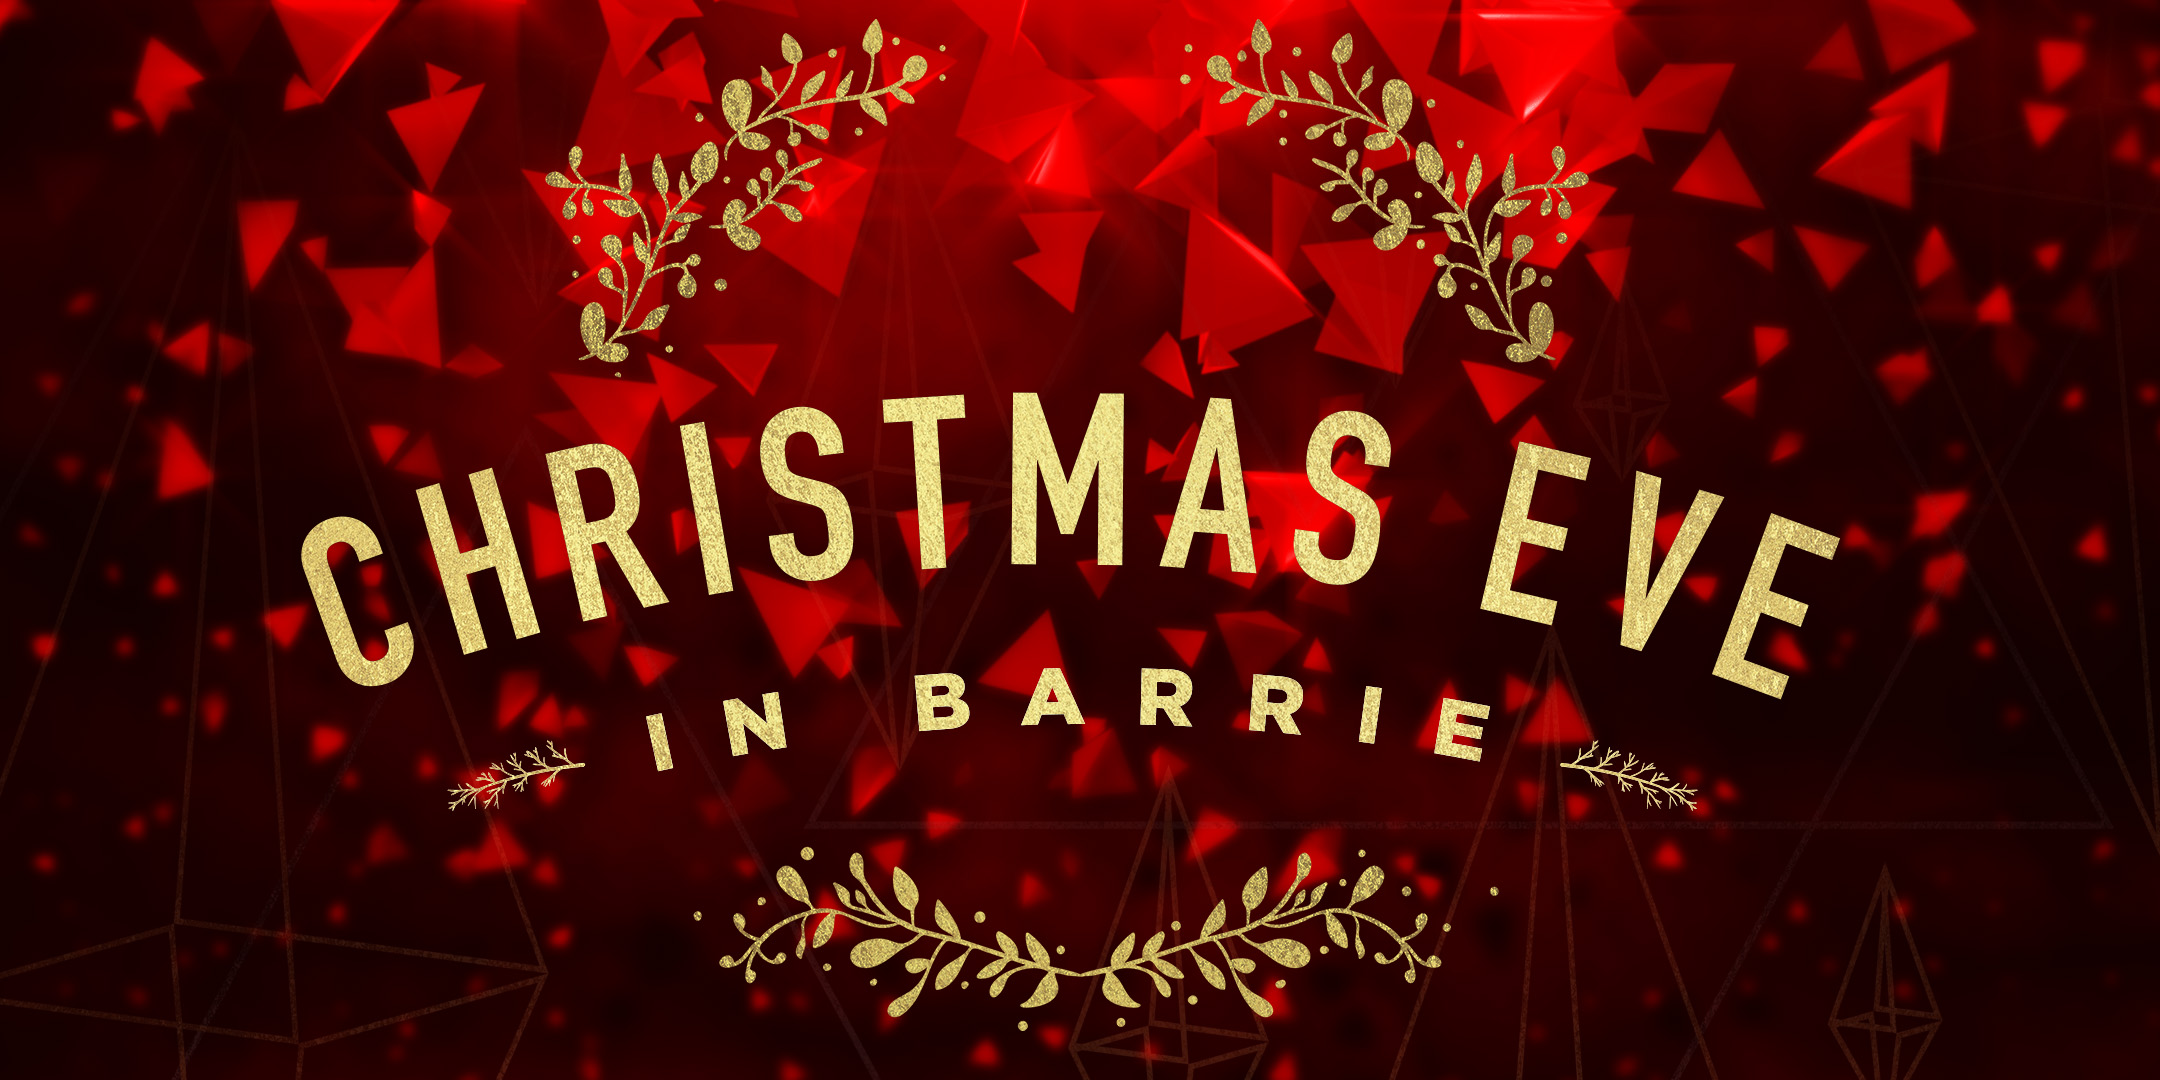 Christmas Eve In Barrie Graphic